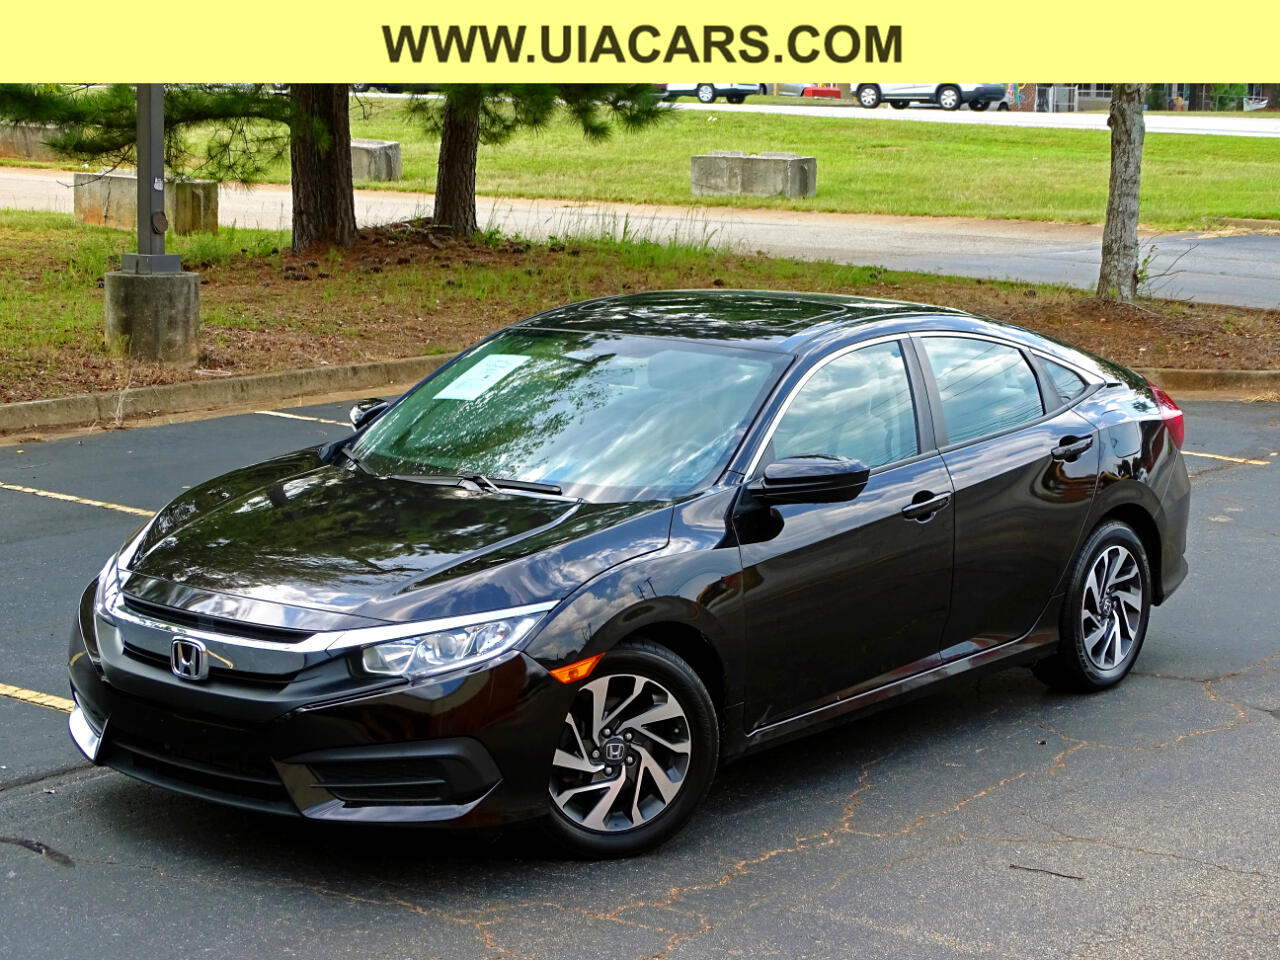 2016 Honda Civic Sedan 4dr CVT EX